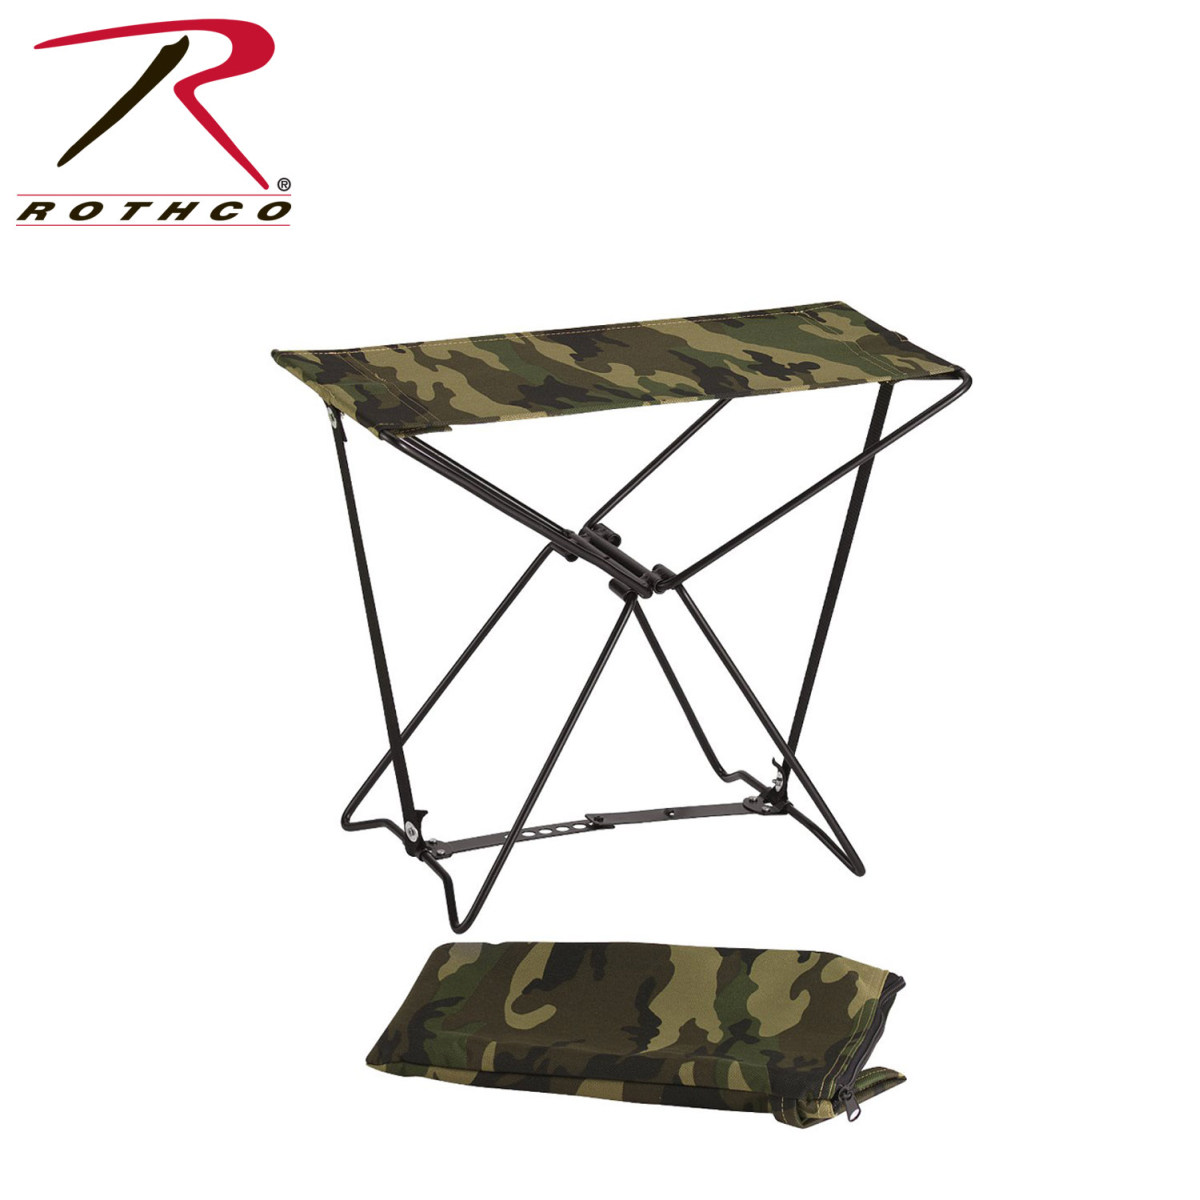 Camp Stools & Chairs